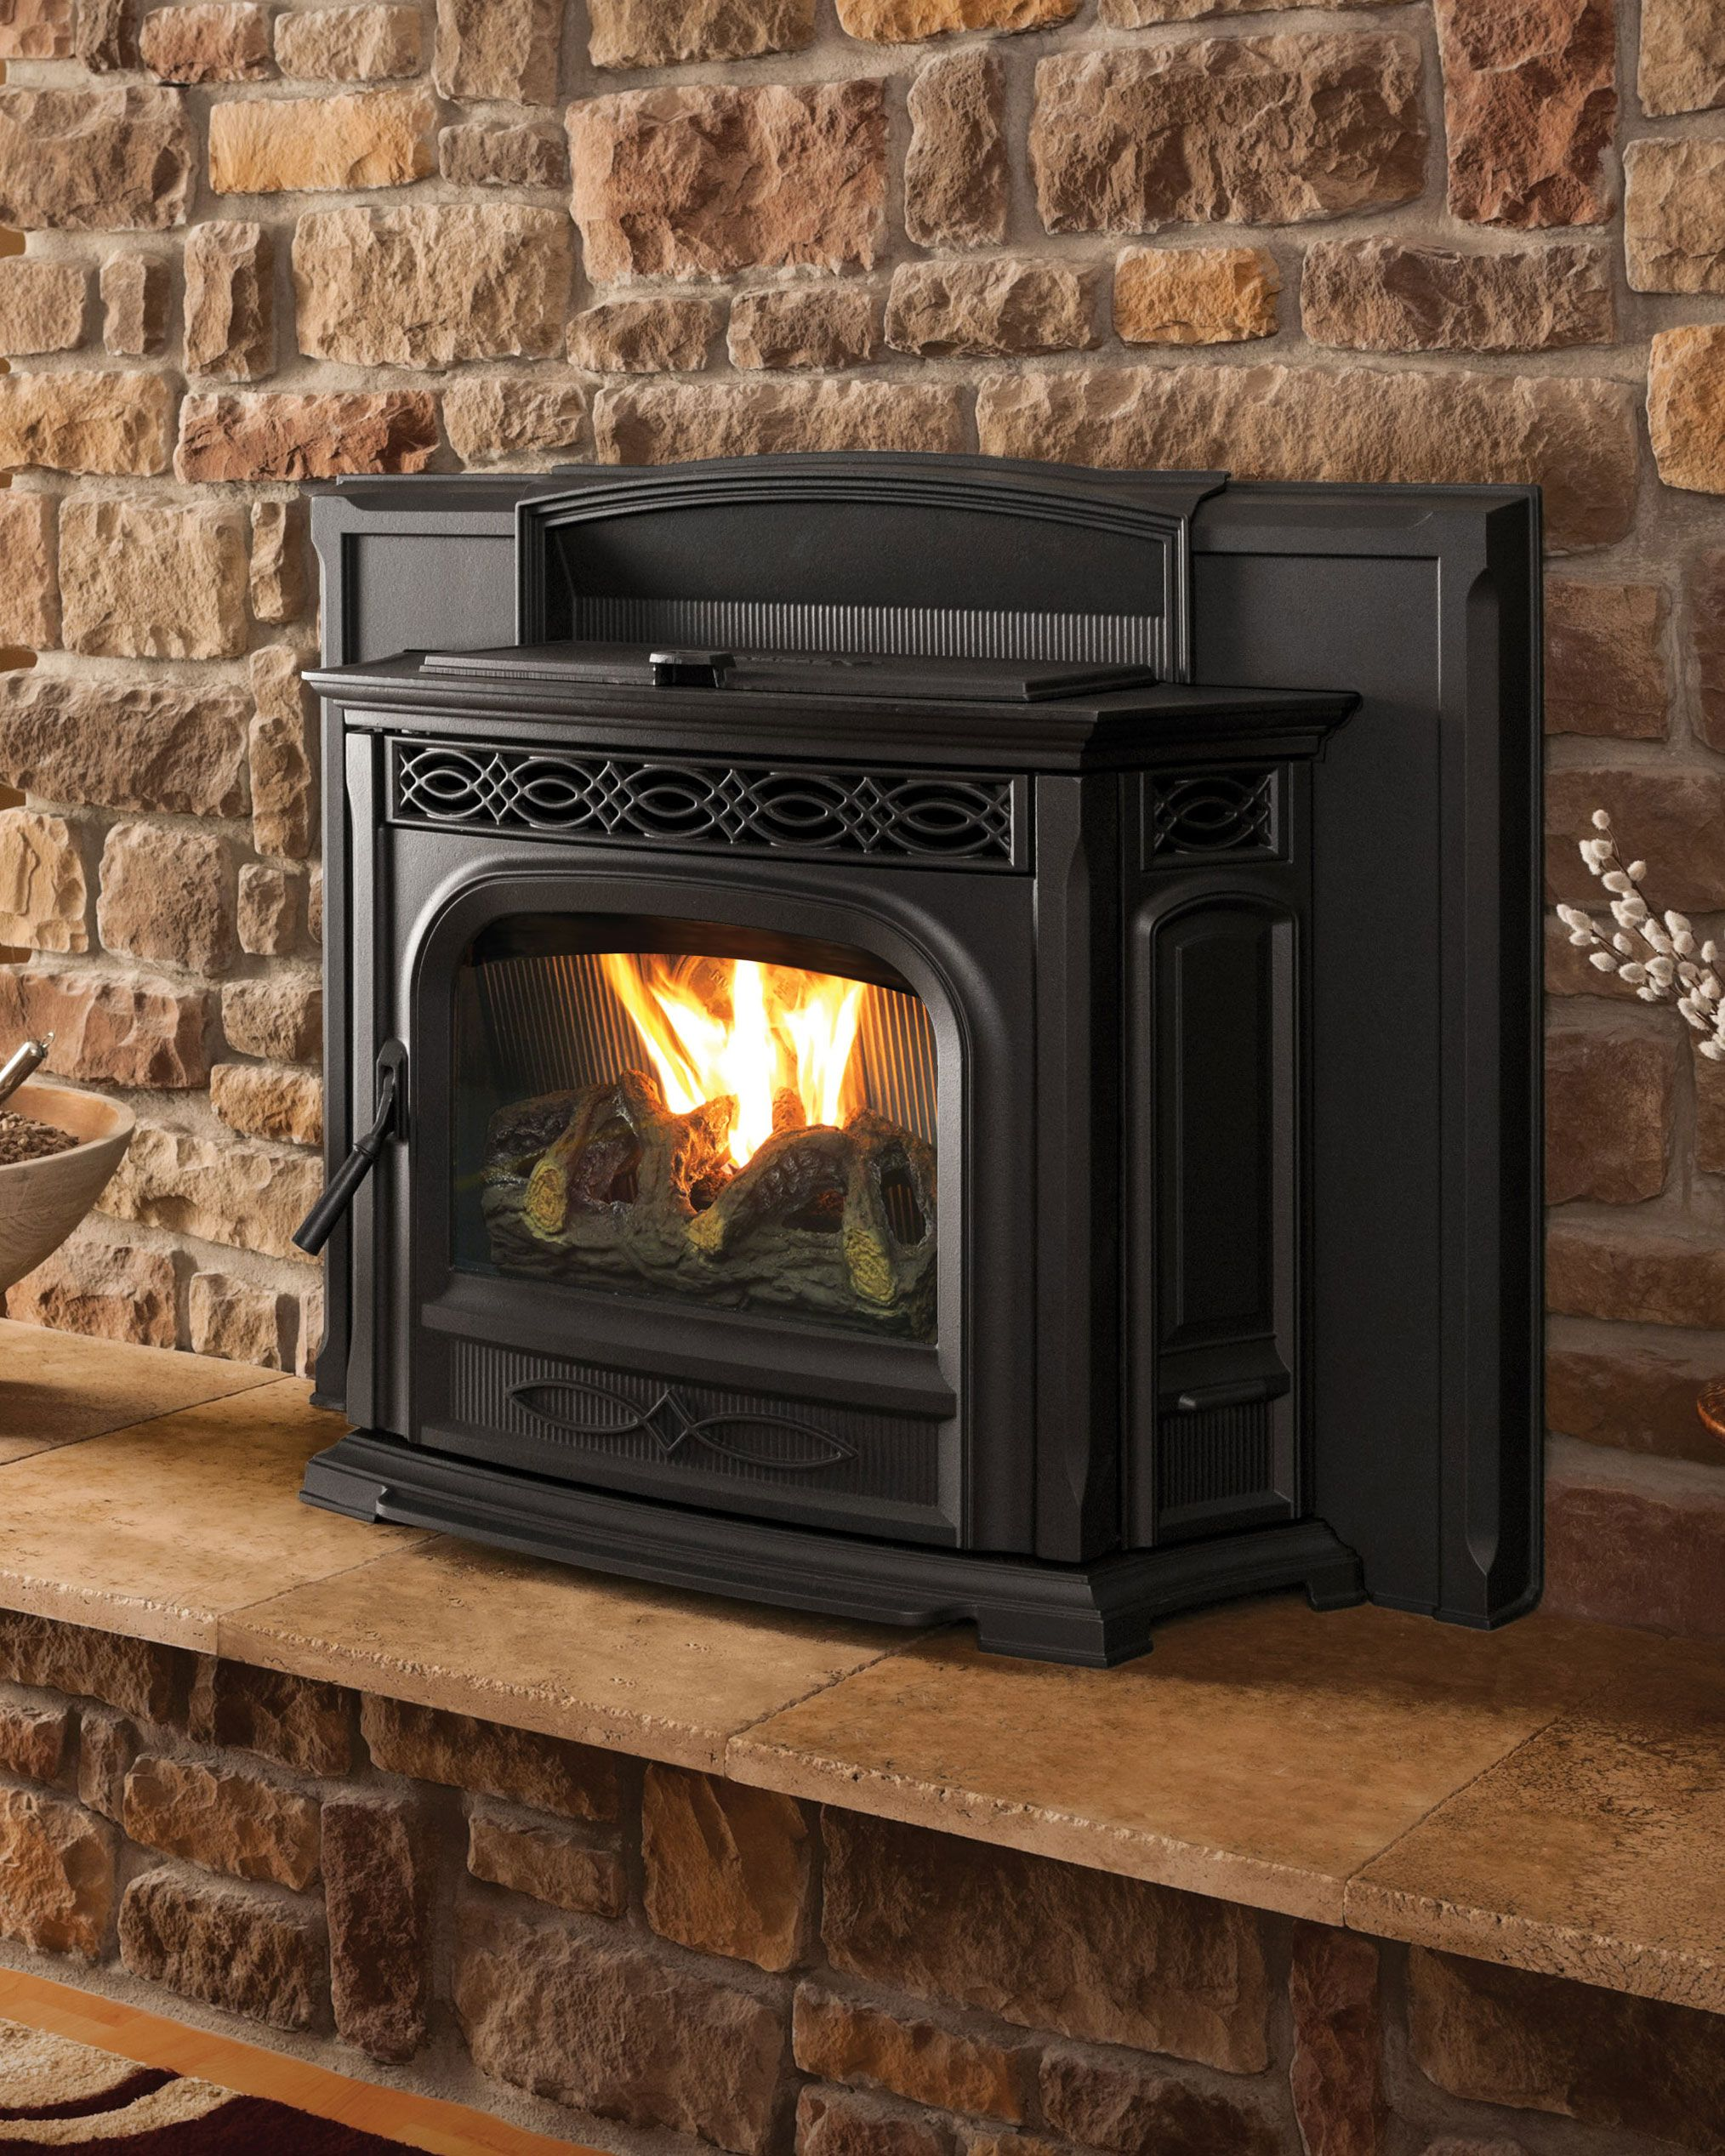 Stove and Pellet stove